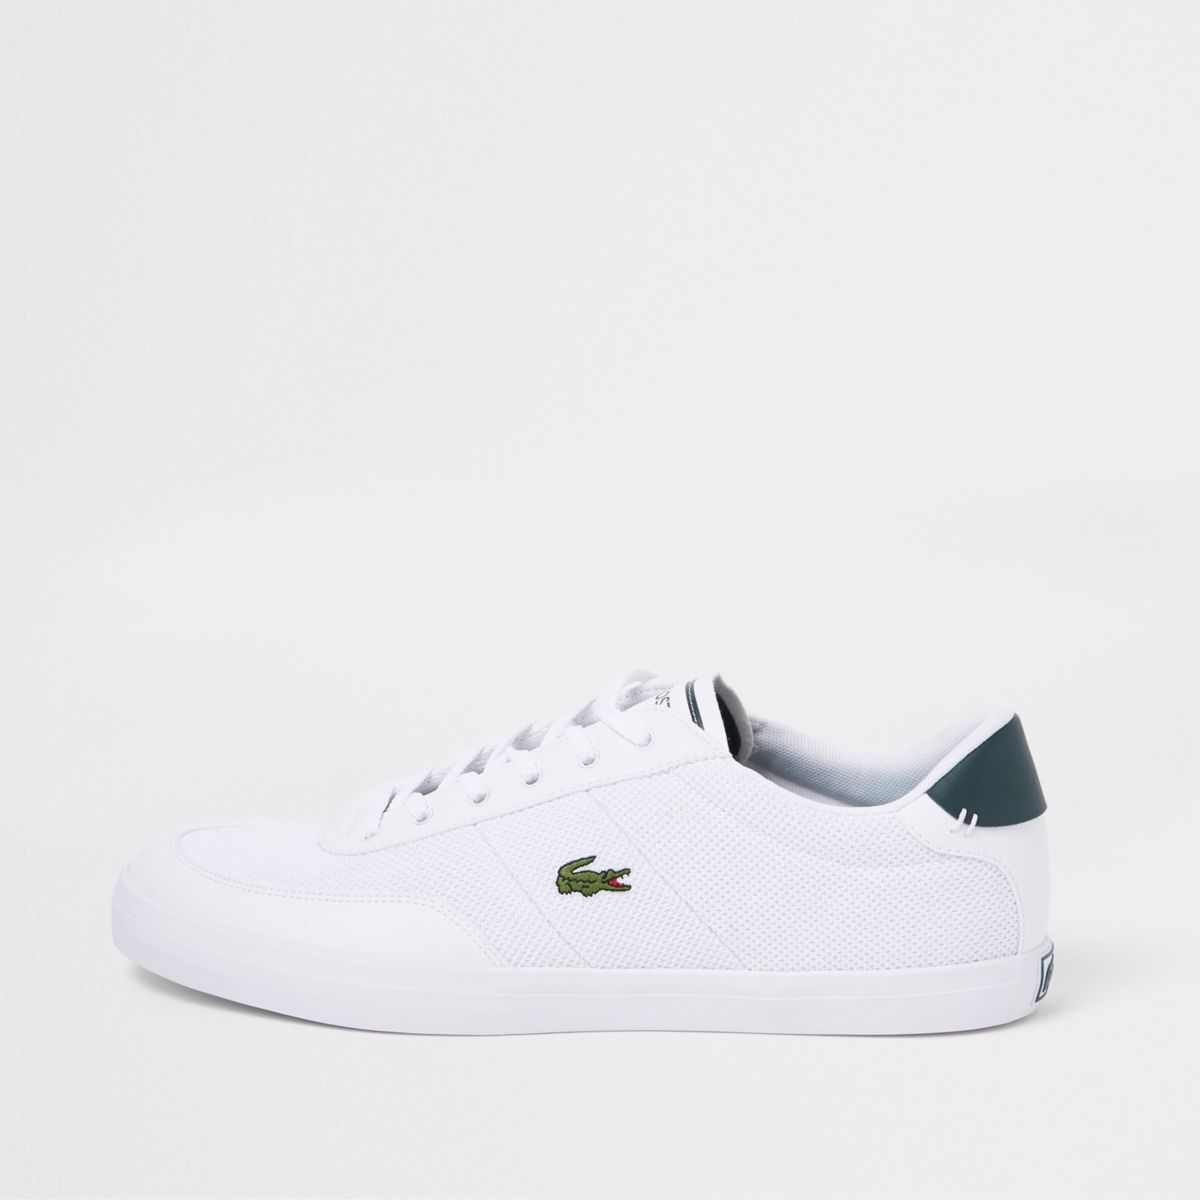 Lacoste white court lace-up sneakers